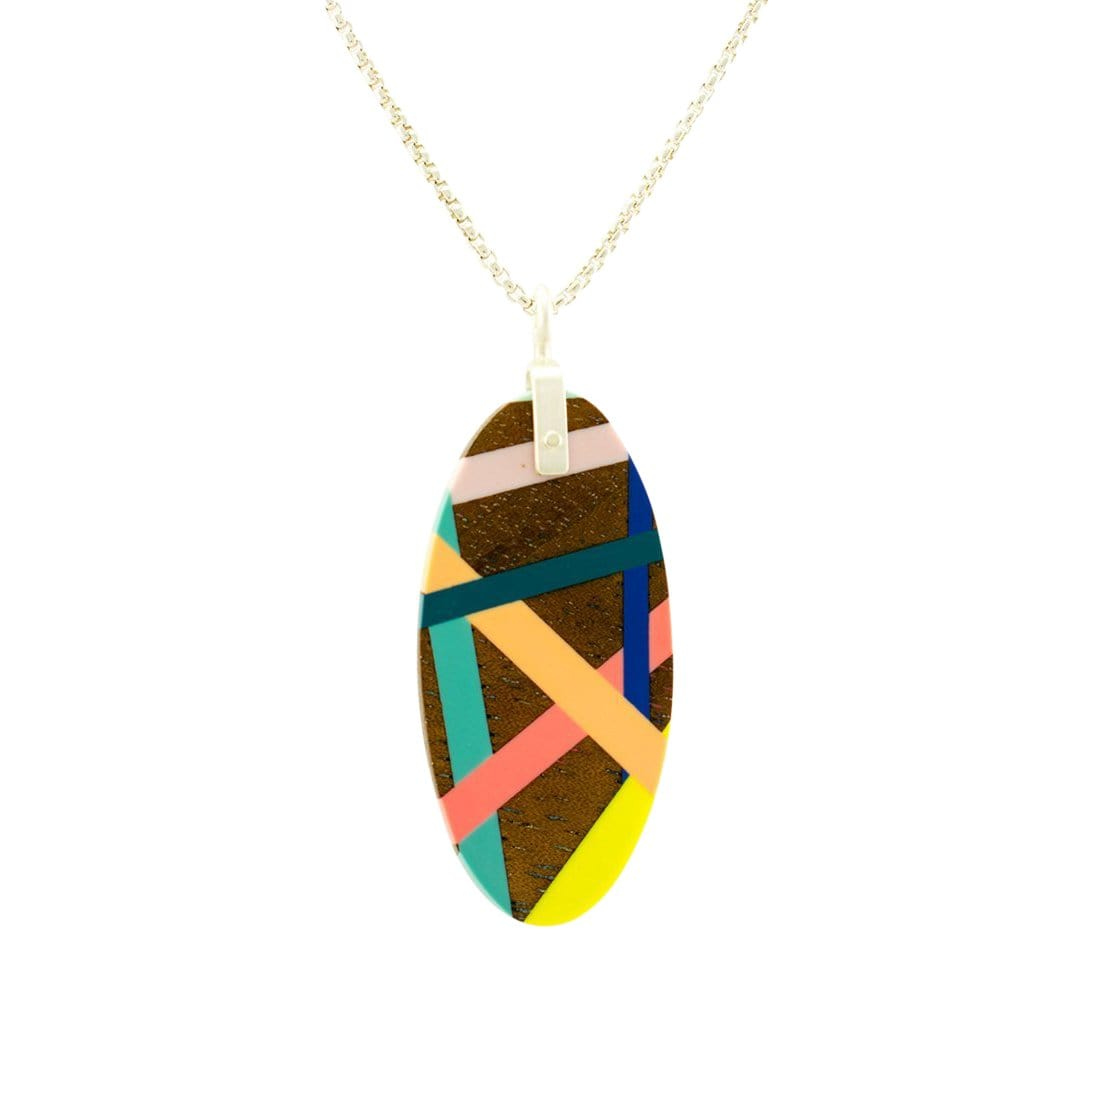 Laura Jaklitsch Jewelry Necklaces Bright Finish Tropical Black Walnut Wood with Inlay Necklace